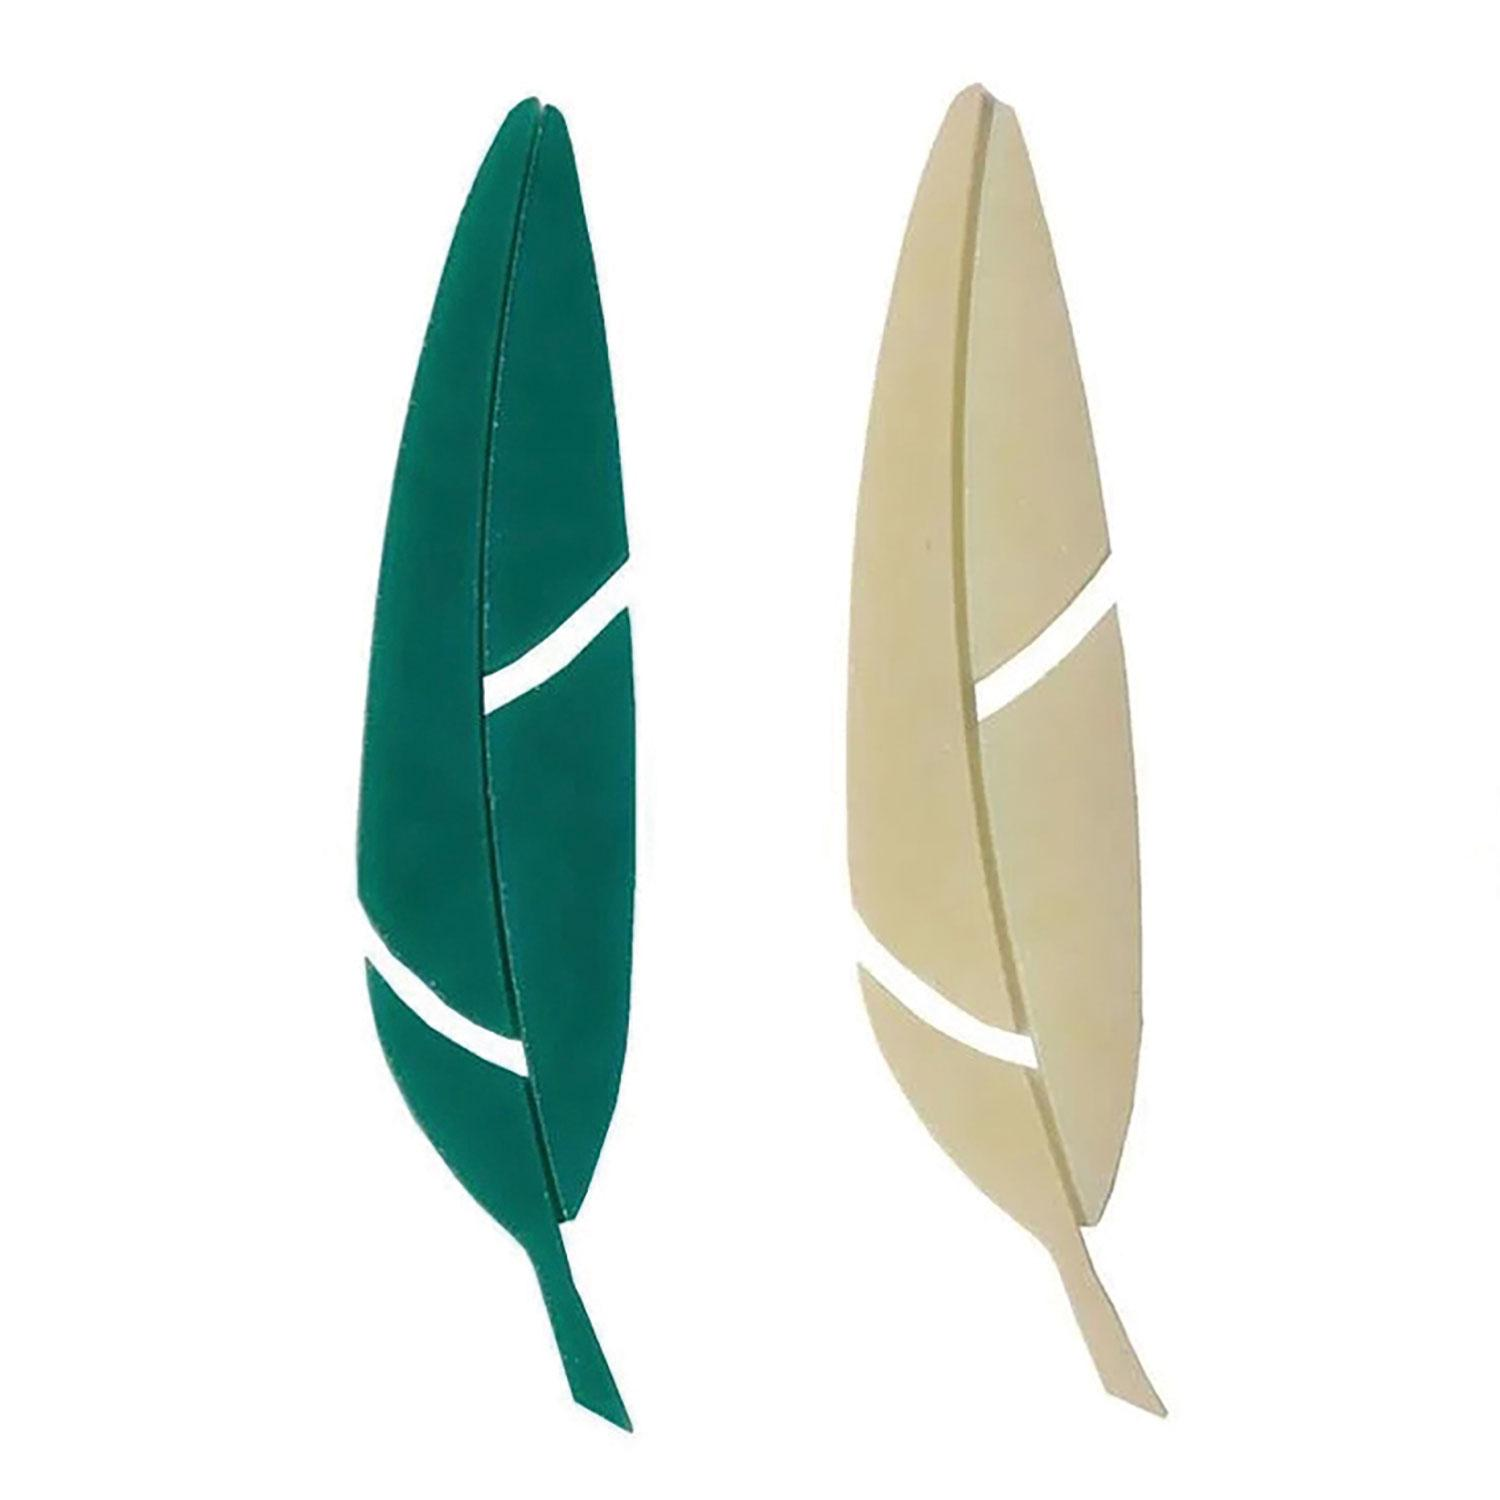 Teal and Ivory Fusible Feathers Pre-Cut 2 Pack - 90 COE